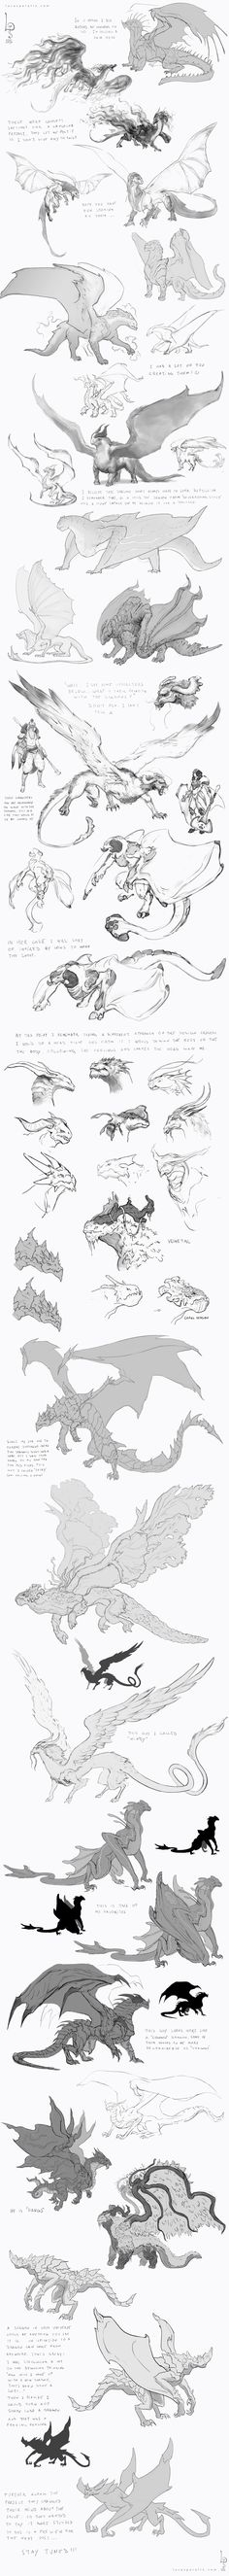 ArtStation - Concept Sketches - Dragons, Lucas Parolin